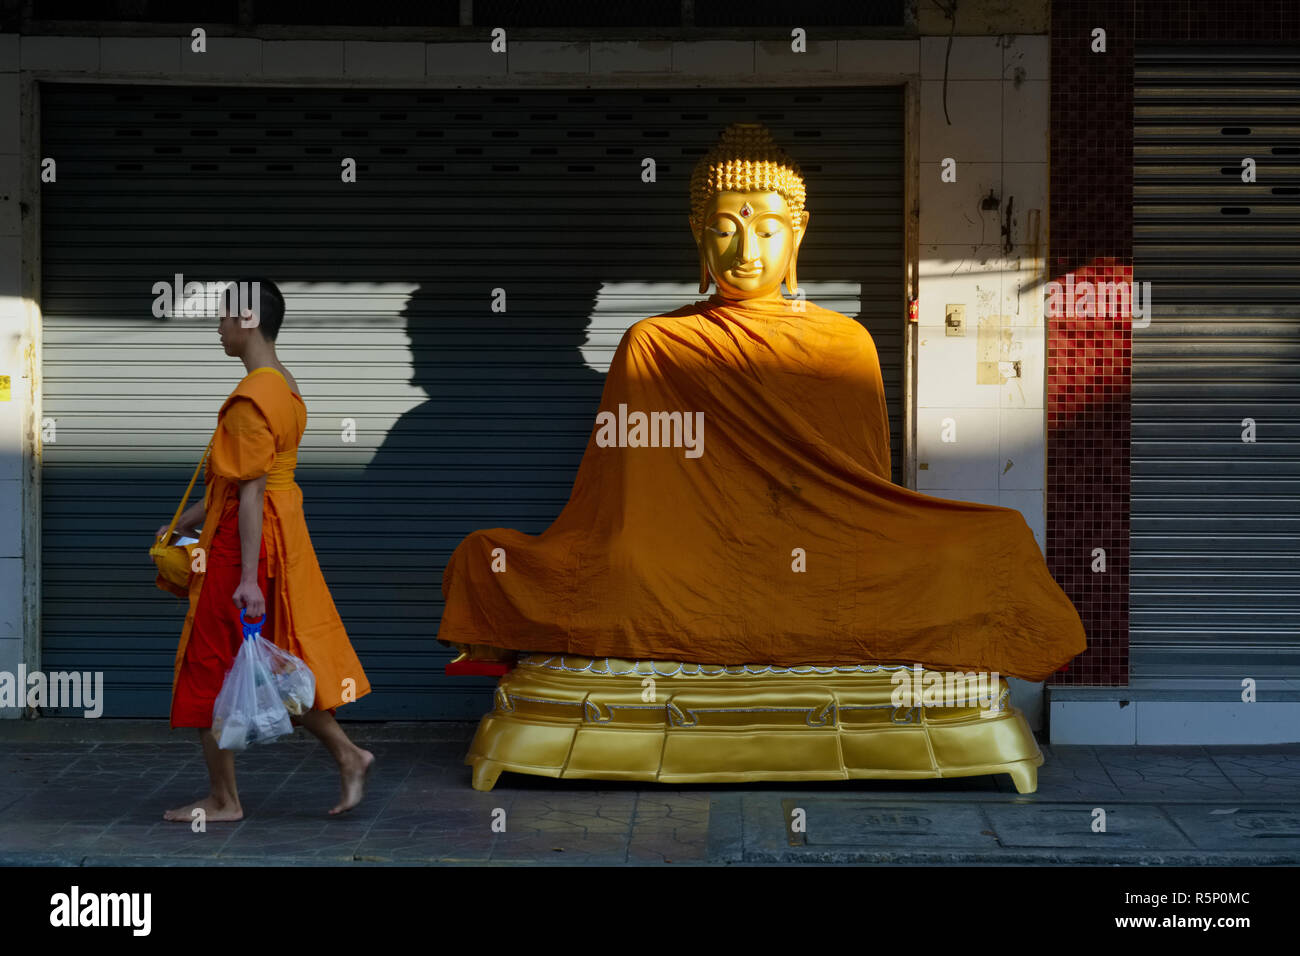 A novice monk passed a Buddha statue placed in front of a shop for religious artifacts, in Bamrung Muang Road, Bangkok, Thailand - Stock Image